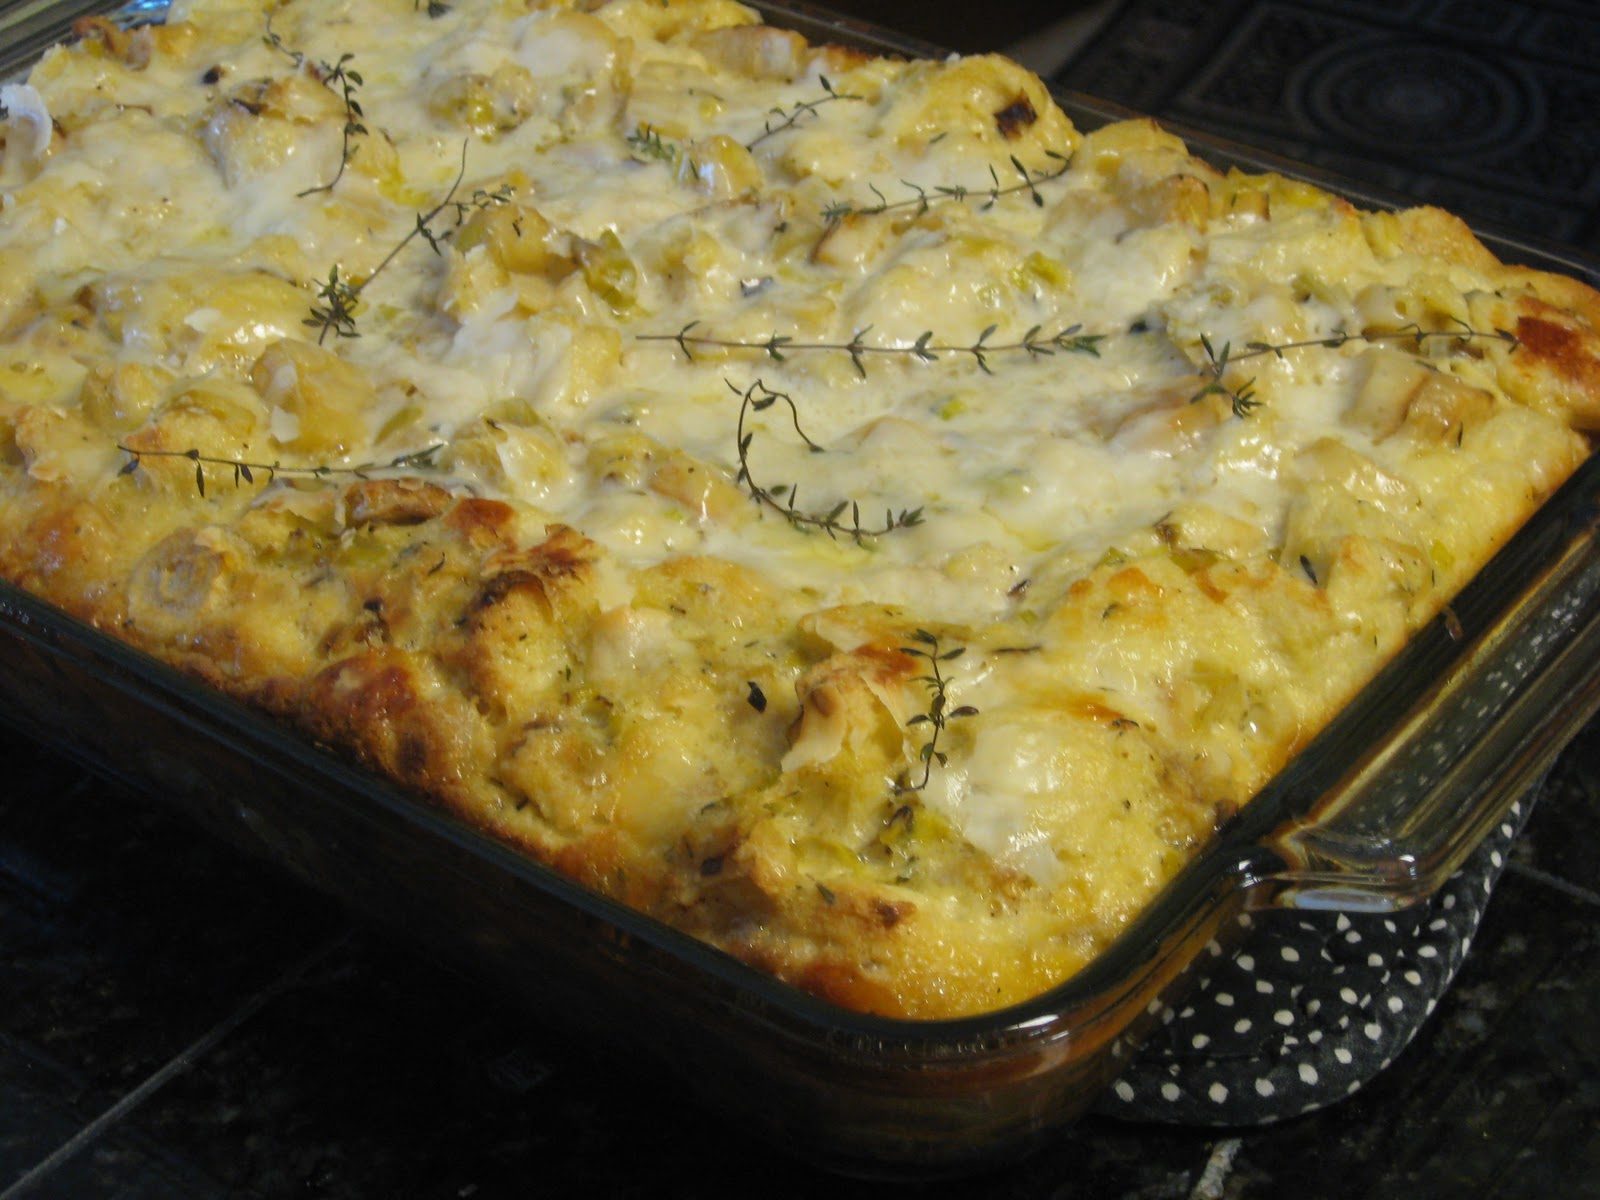 This family favorite, roasted parsnip bread pudding, was decadent with ...